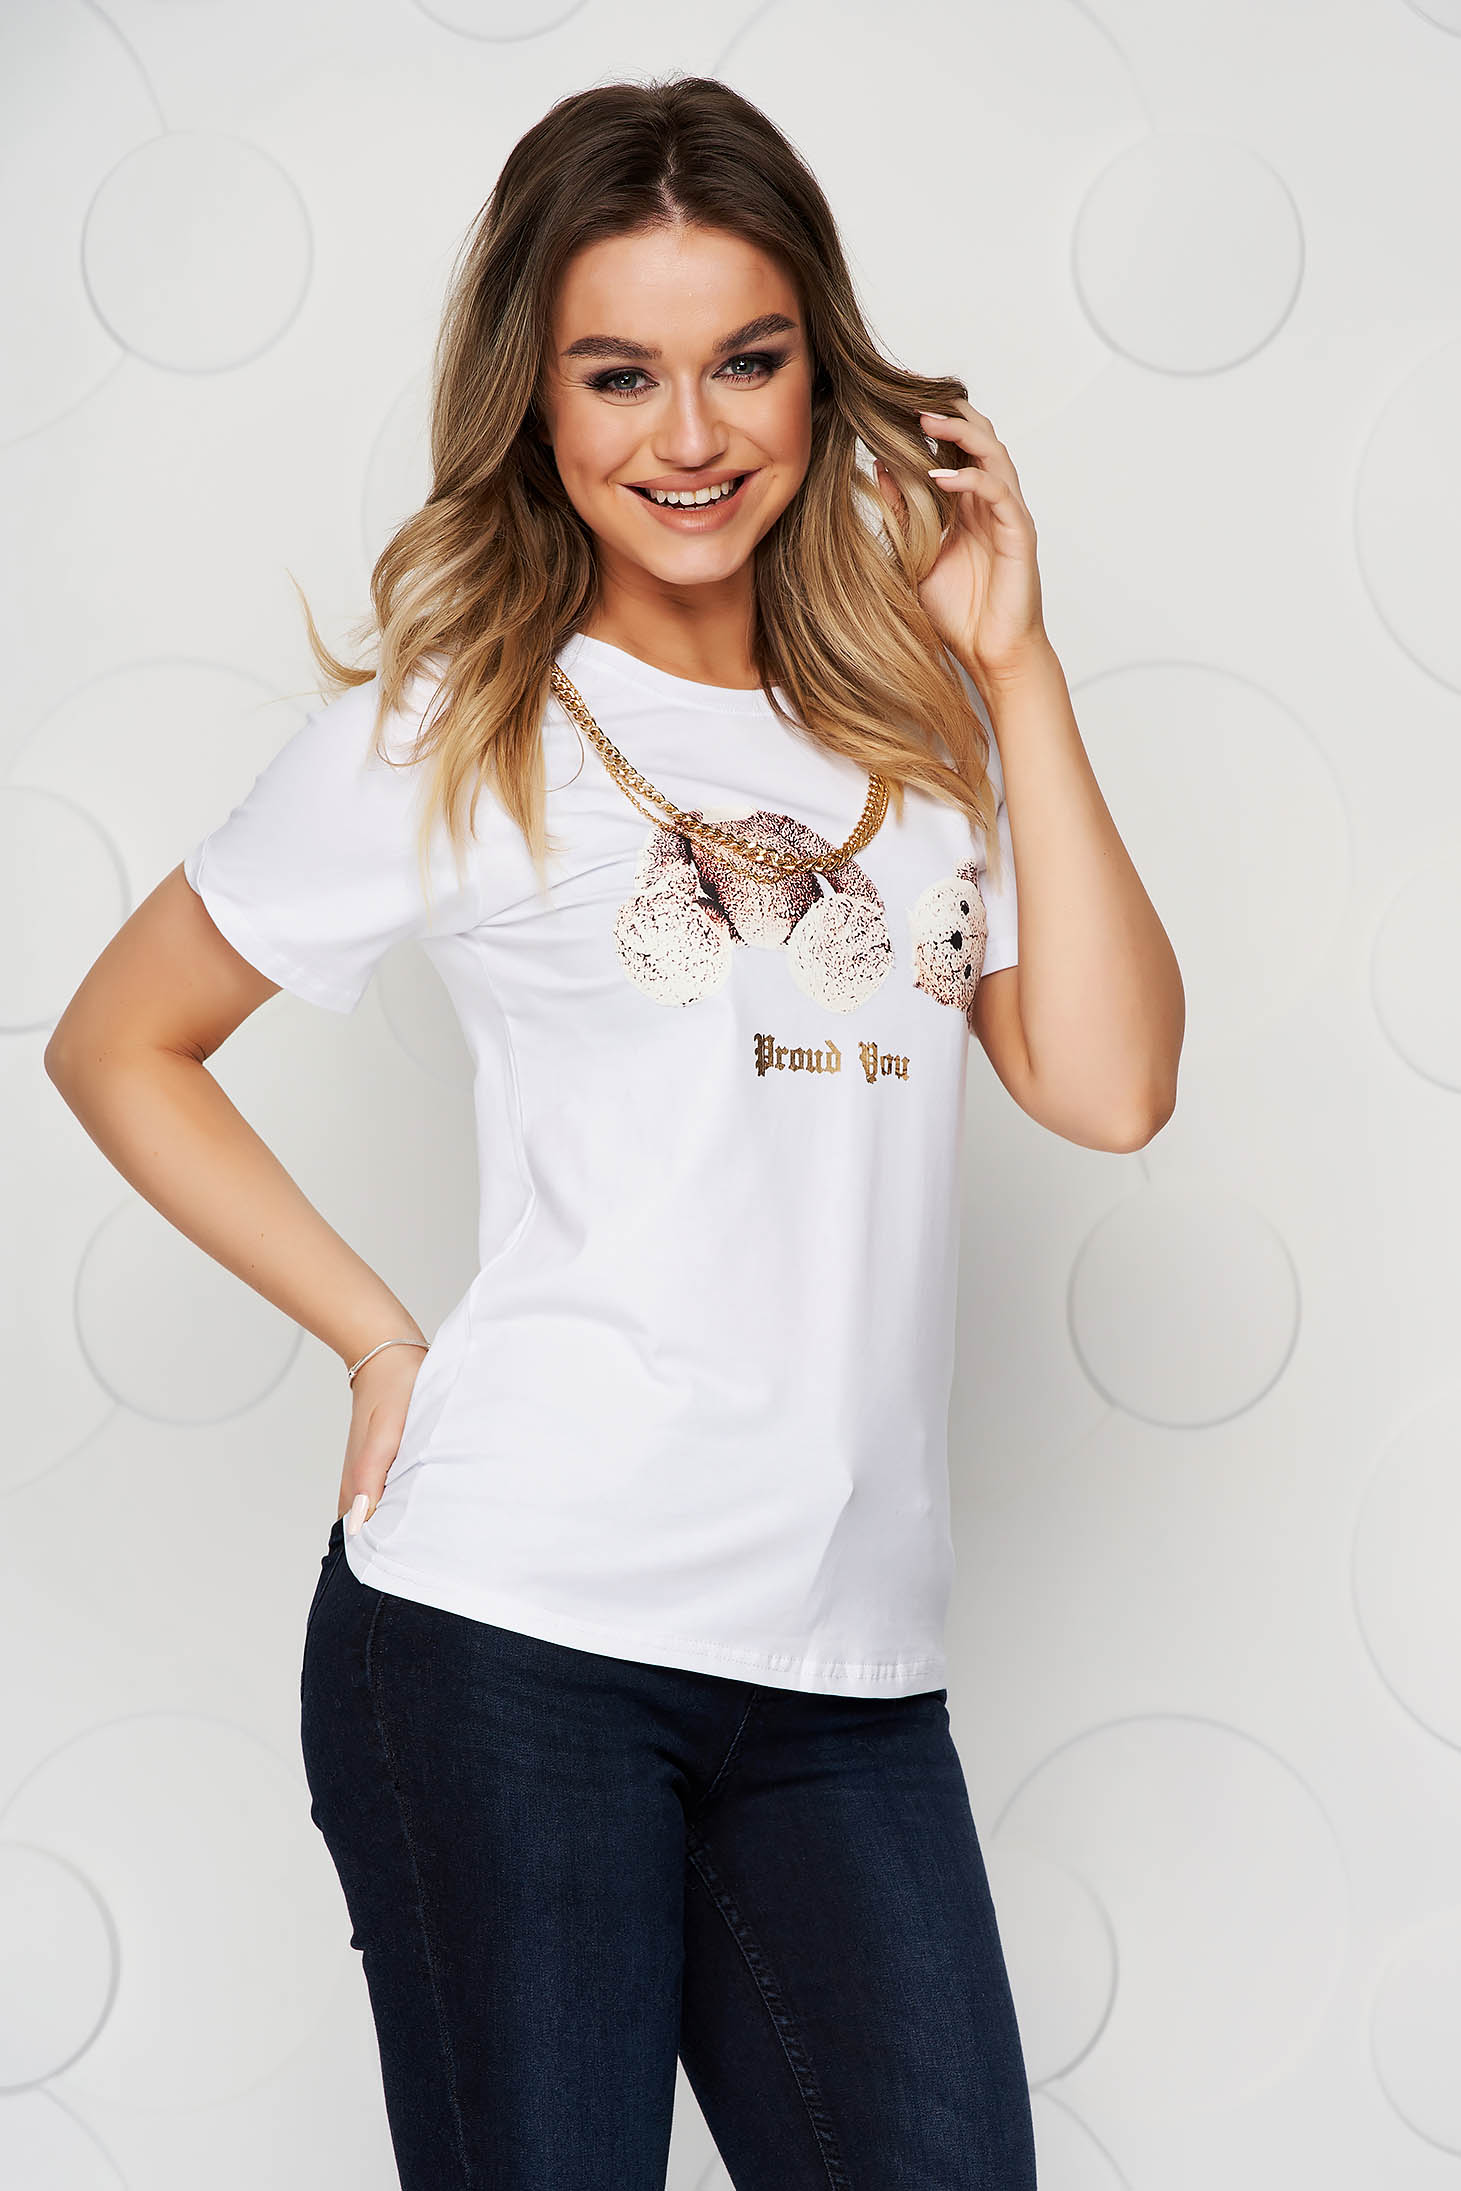 White t-shirt with graphic details elastic cotton metallic chain accessory loose fit